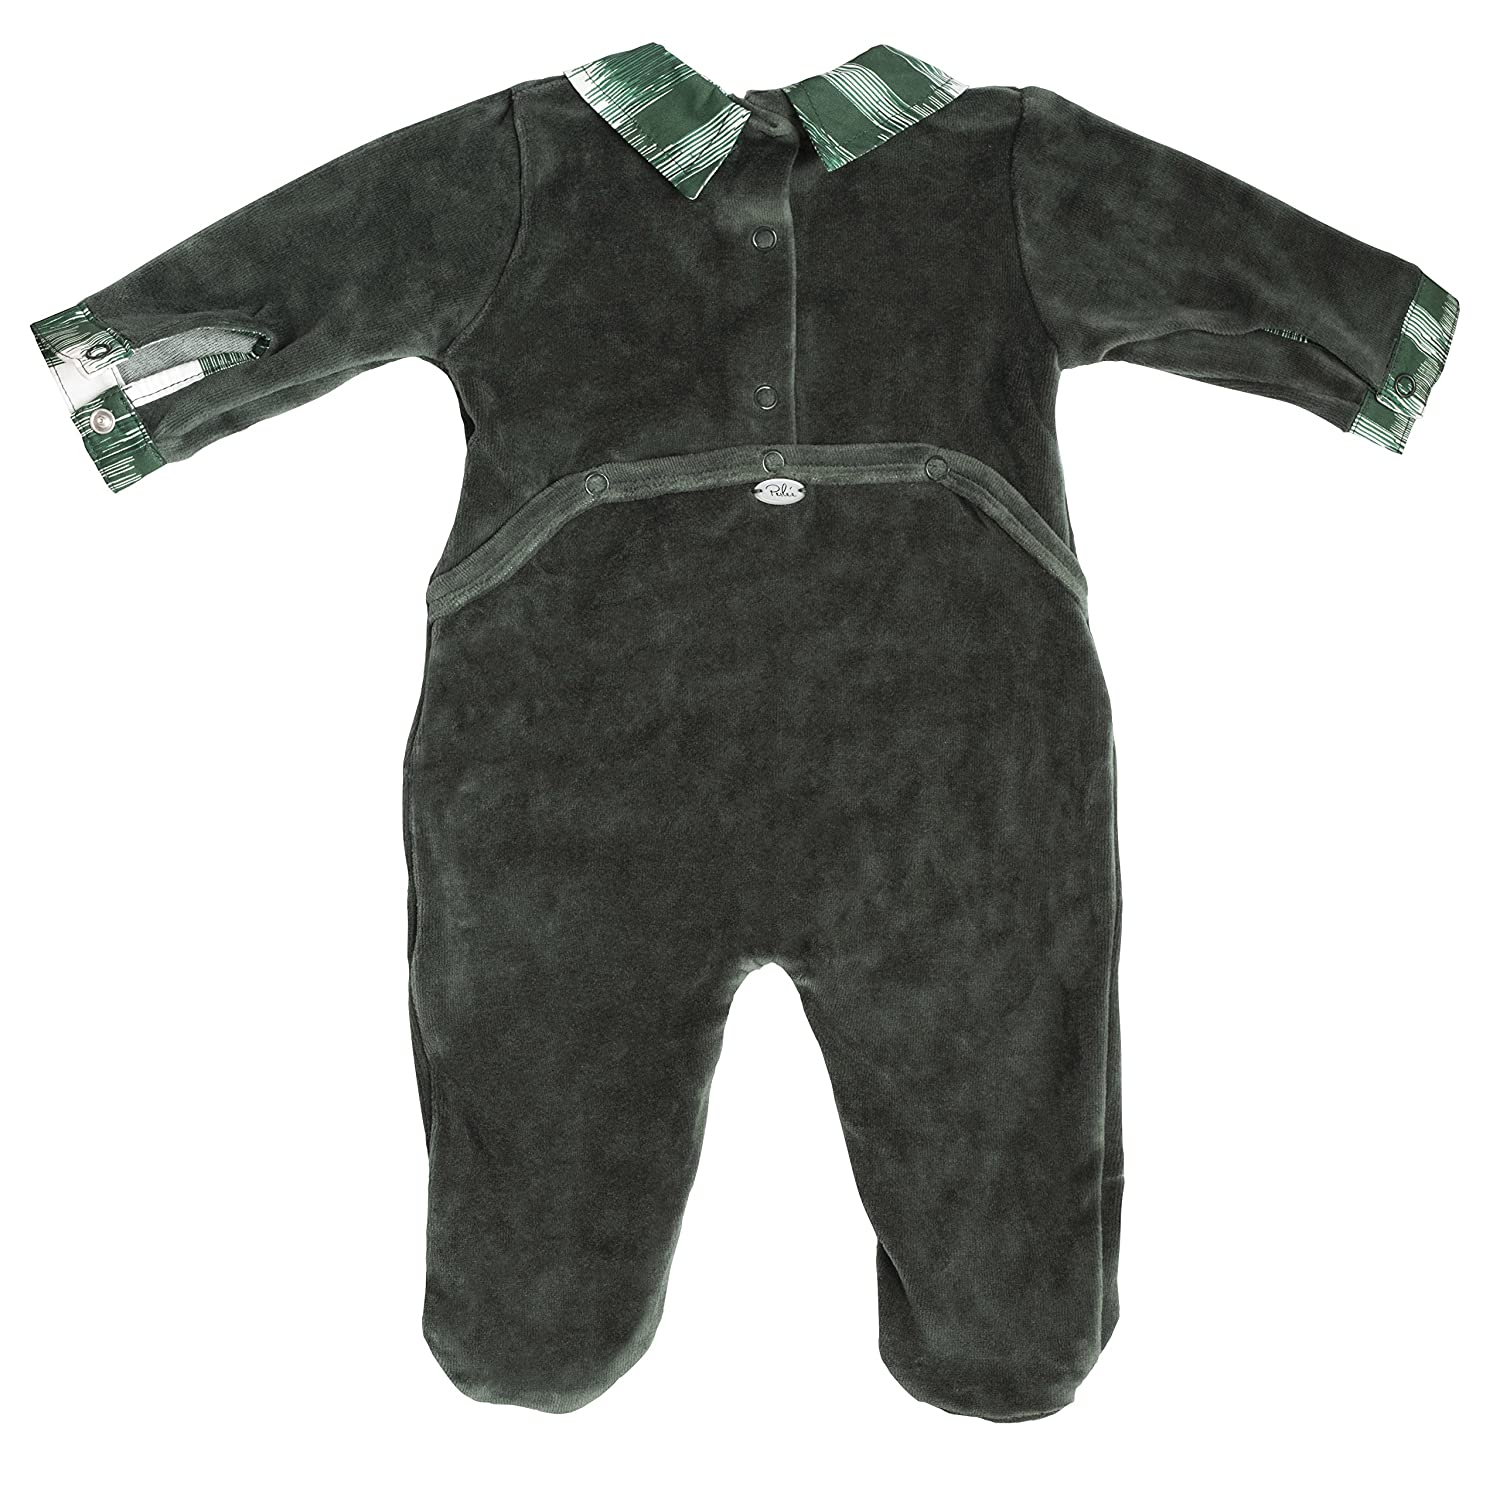 Baby Footie Green Velour with Plaid Trim Footed Onesie Jack /& Jill Romper for Baby Boys